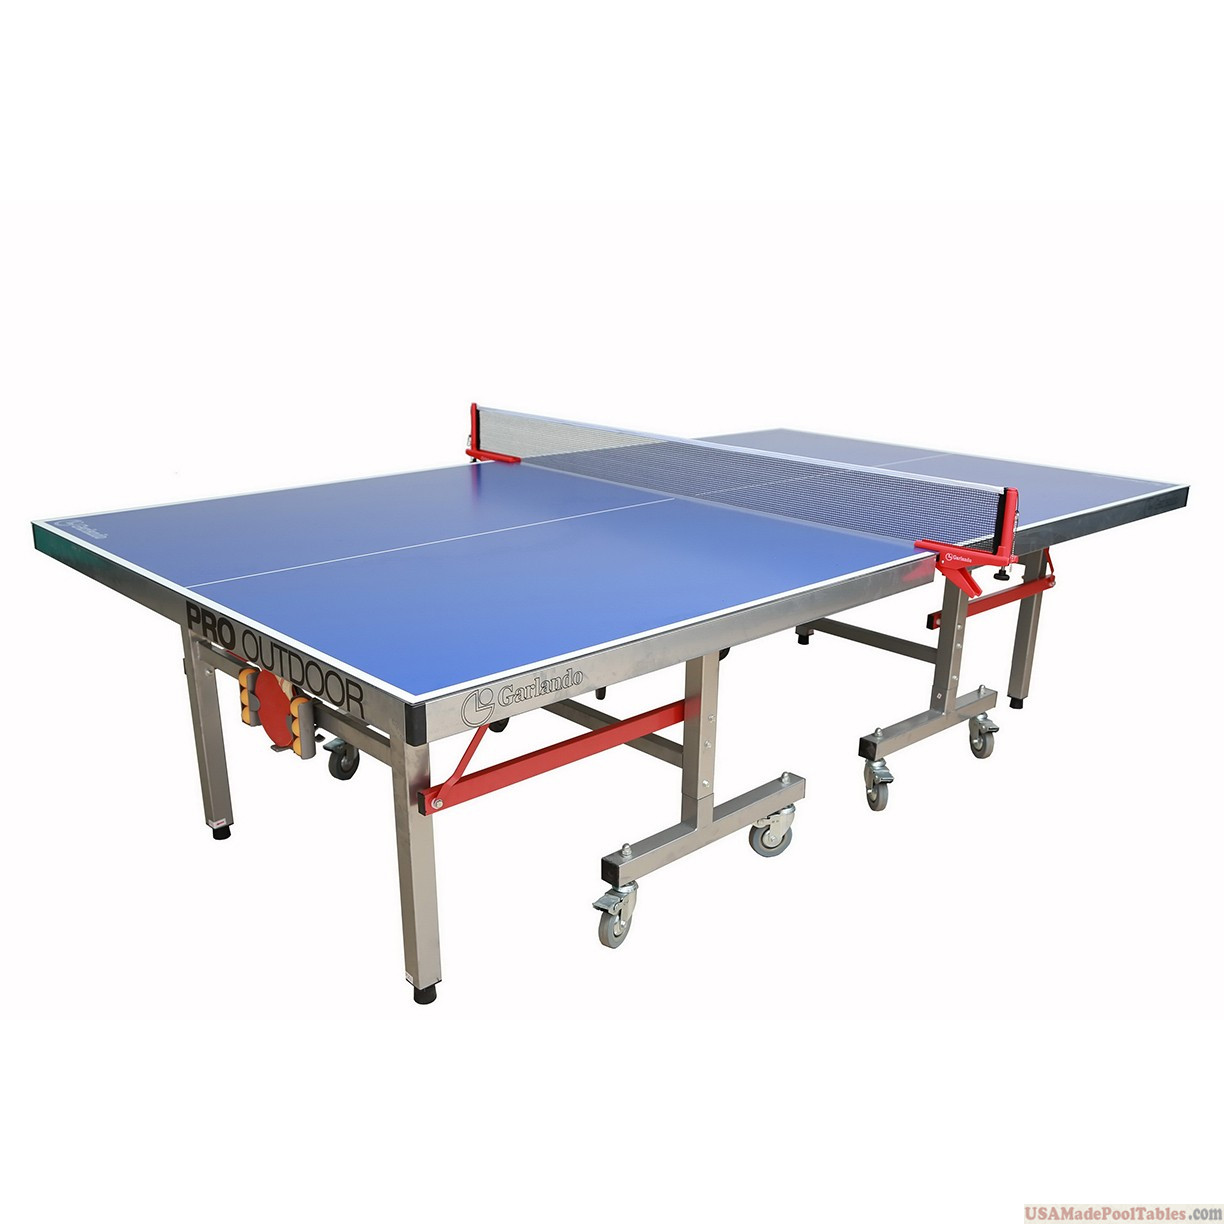 PRO OUTDOOR TABLE TENNIS TABLE